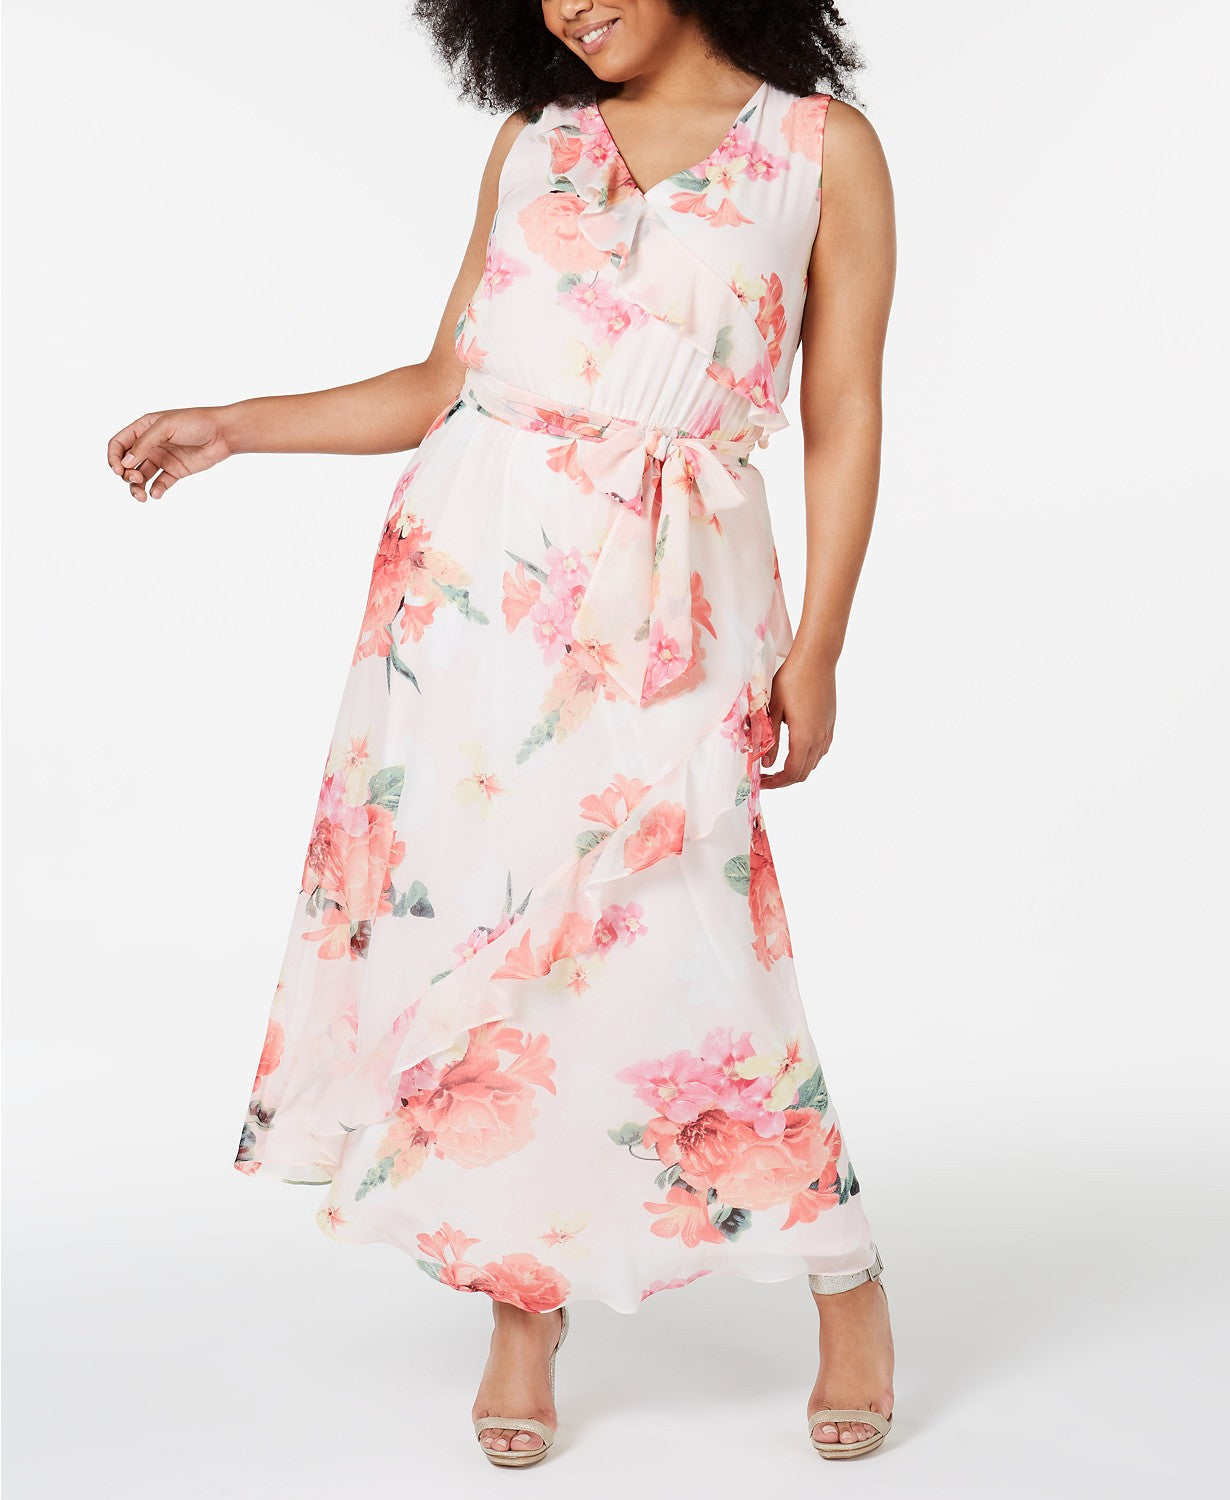 Calvin Klein Plus Size Floral-Print Ruffled Maxi Dress - Porcelain Rose